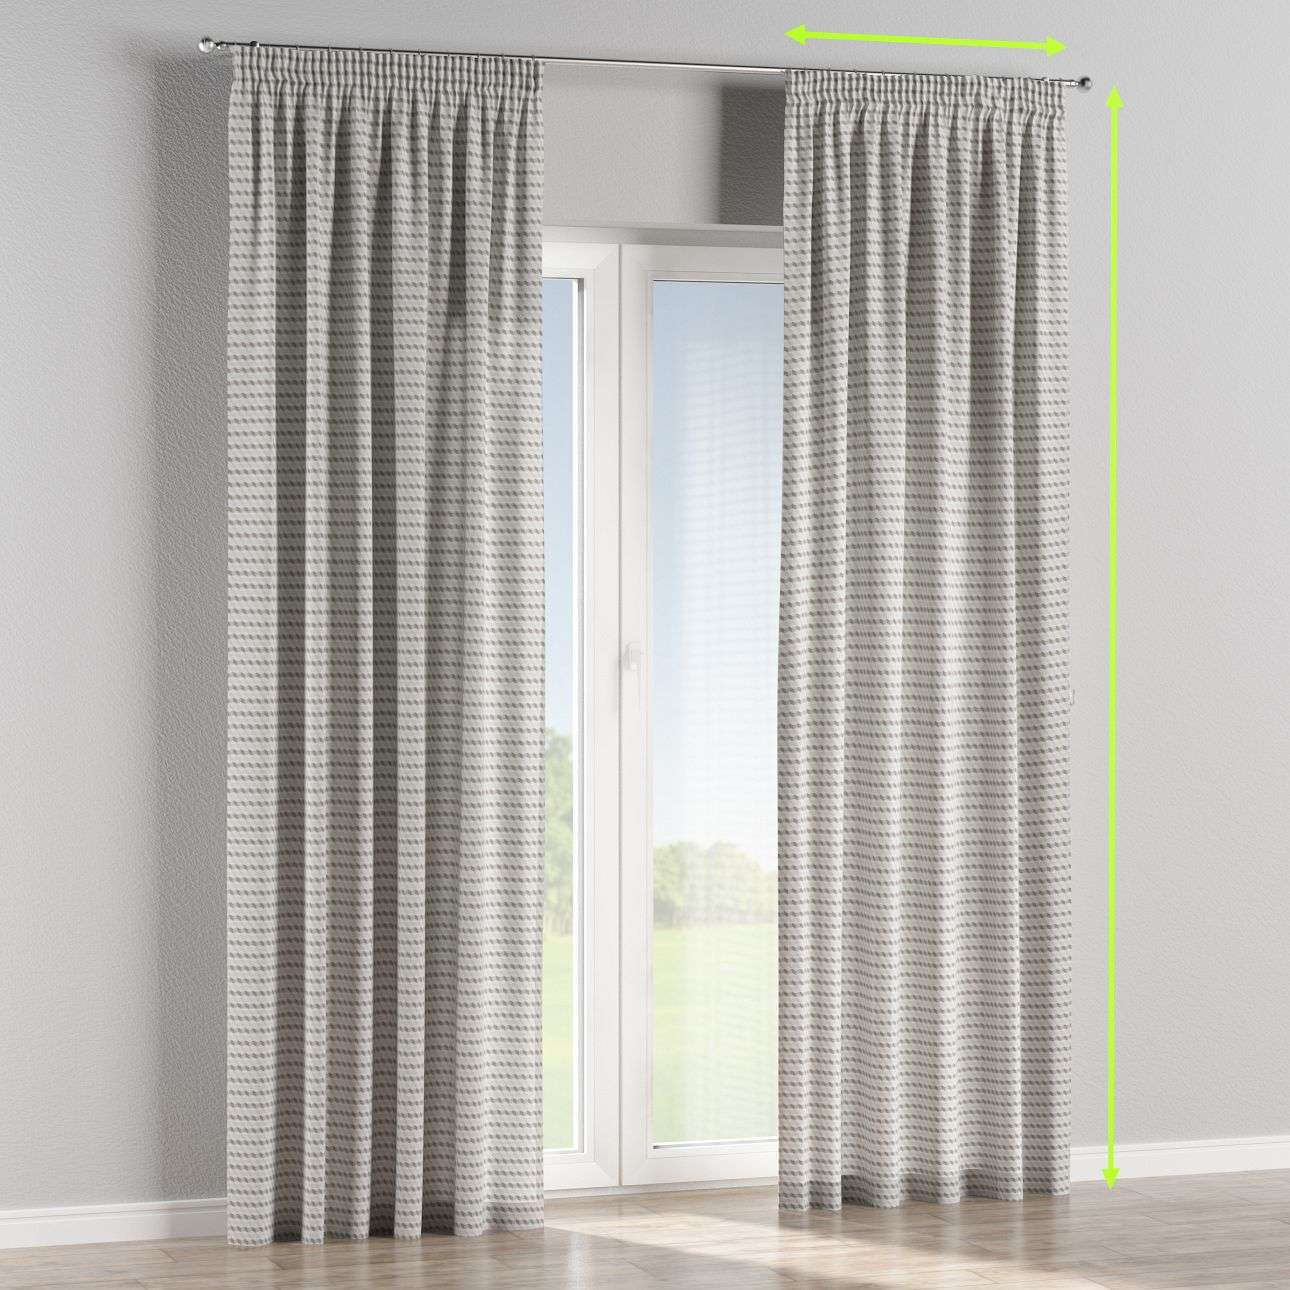 Pencil pleat curtains in collection Rustica, fabric: 140-33